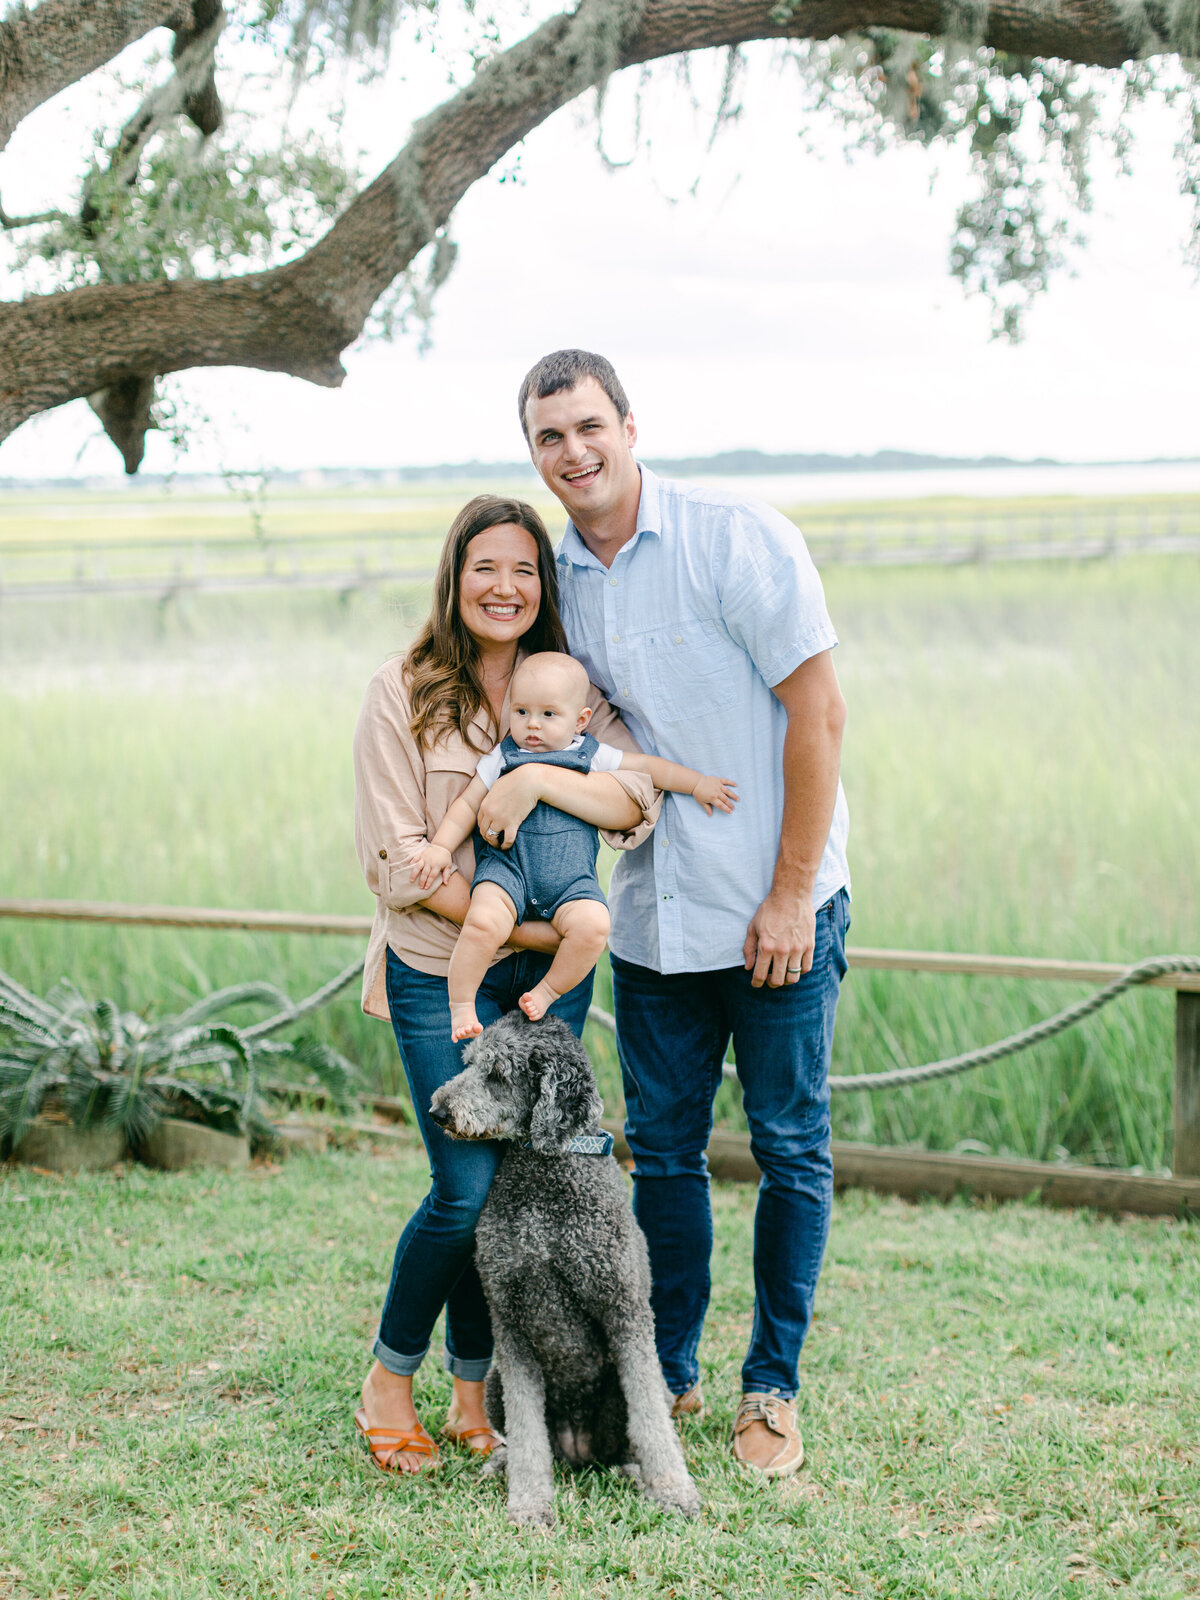 Beaufort Family Photographer | Charleston Family Photograher | Hilton Head Family Photographer | Hilton Head Island Wedding Photographer | Savannah Wedding Photographer | Beaufort Wedding Photographer _ ARP-11